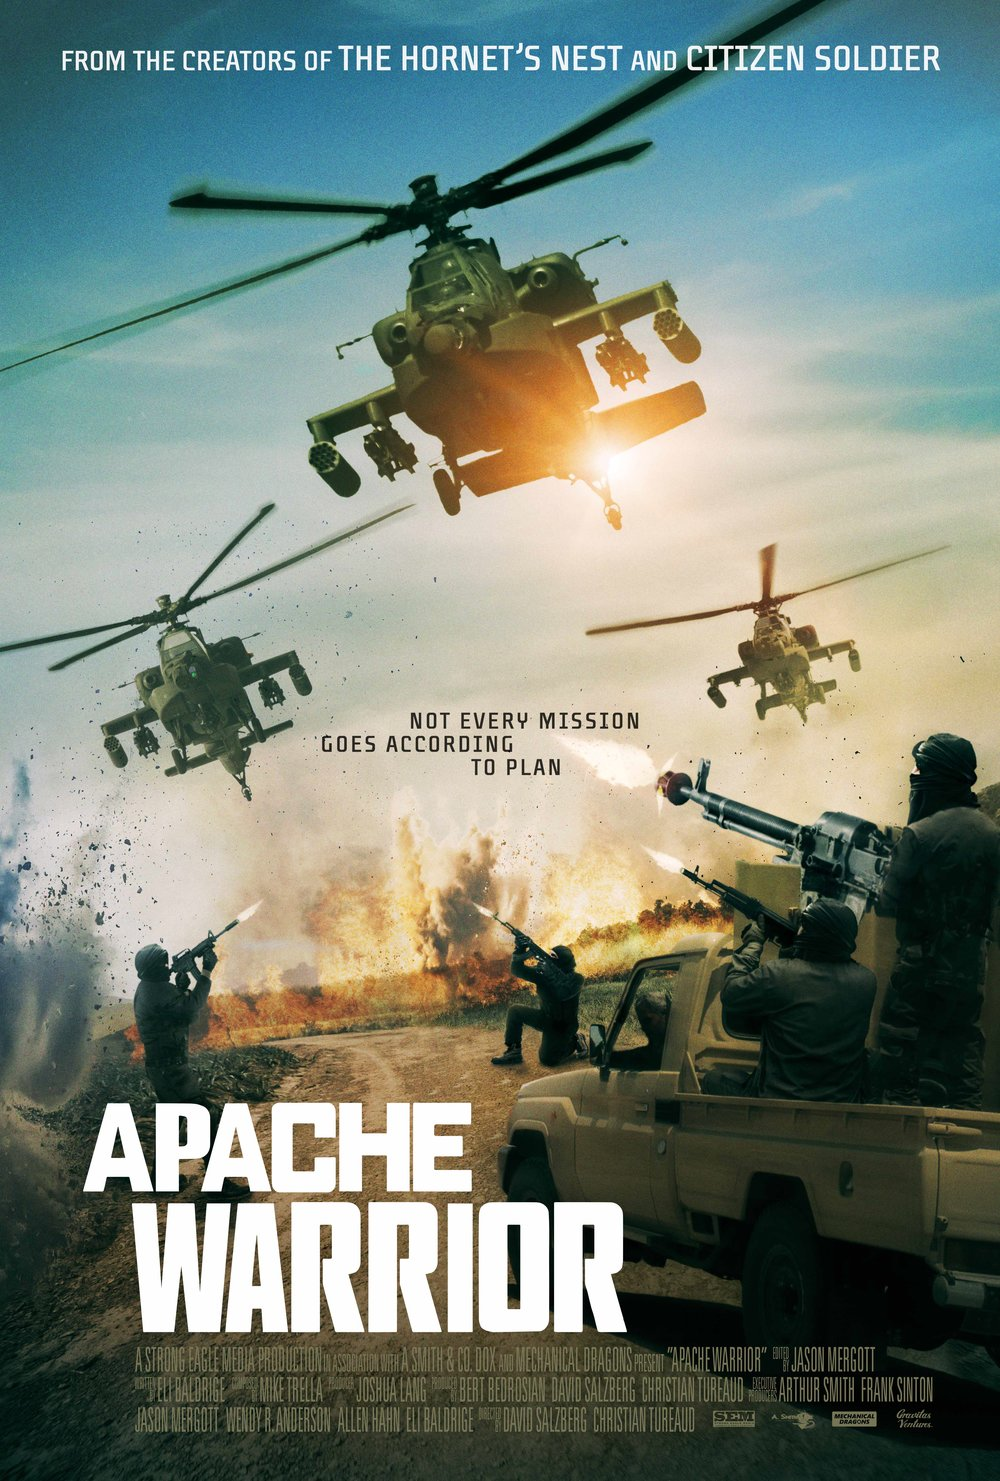 Apache_Warrior_27x40_KeyArt_V1_small.jpg